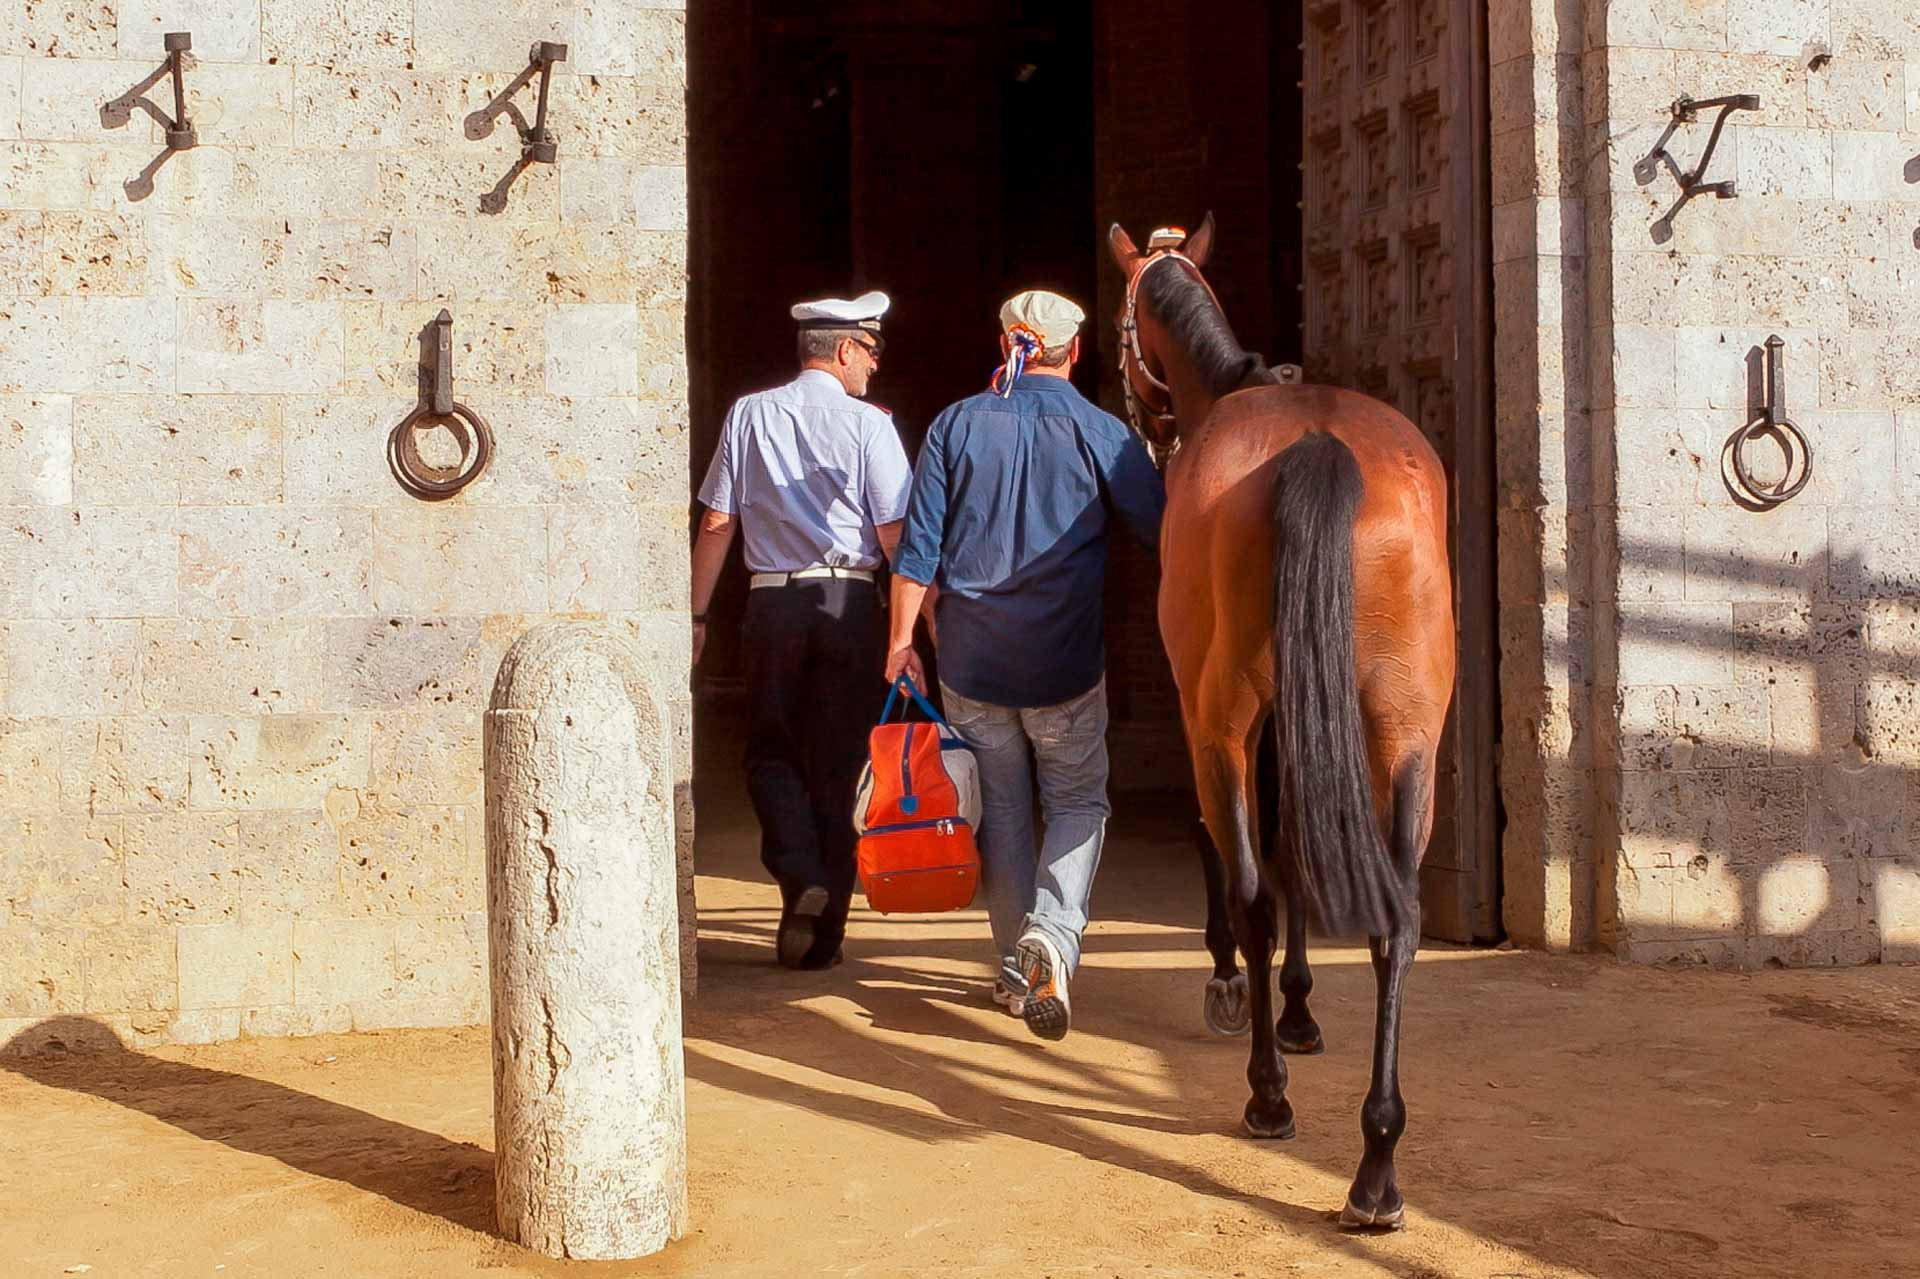 THE FIRST TEST ? When they arrive in Piazza del Campo, the barbaresco introduces the horse into the courtyard of the Podest?, where he will be assigned a position, which he will hold for all six scheduled trials and the Palio.